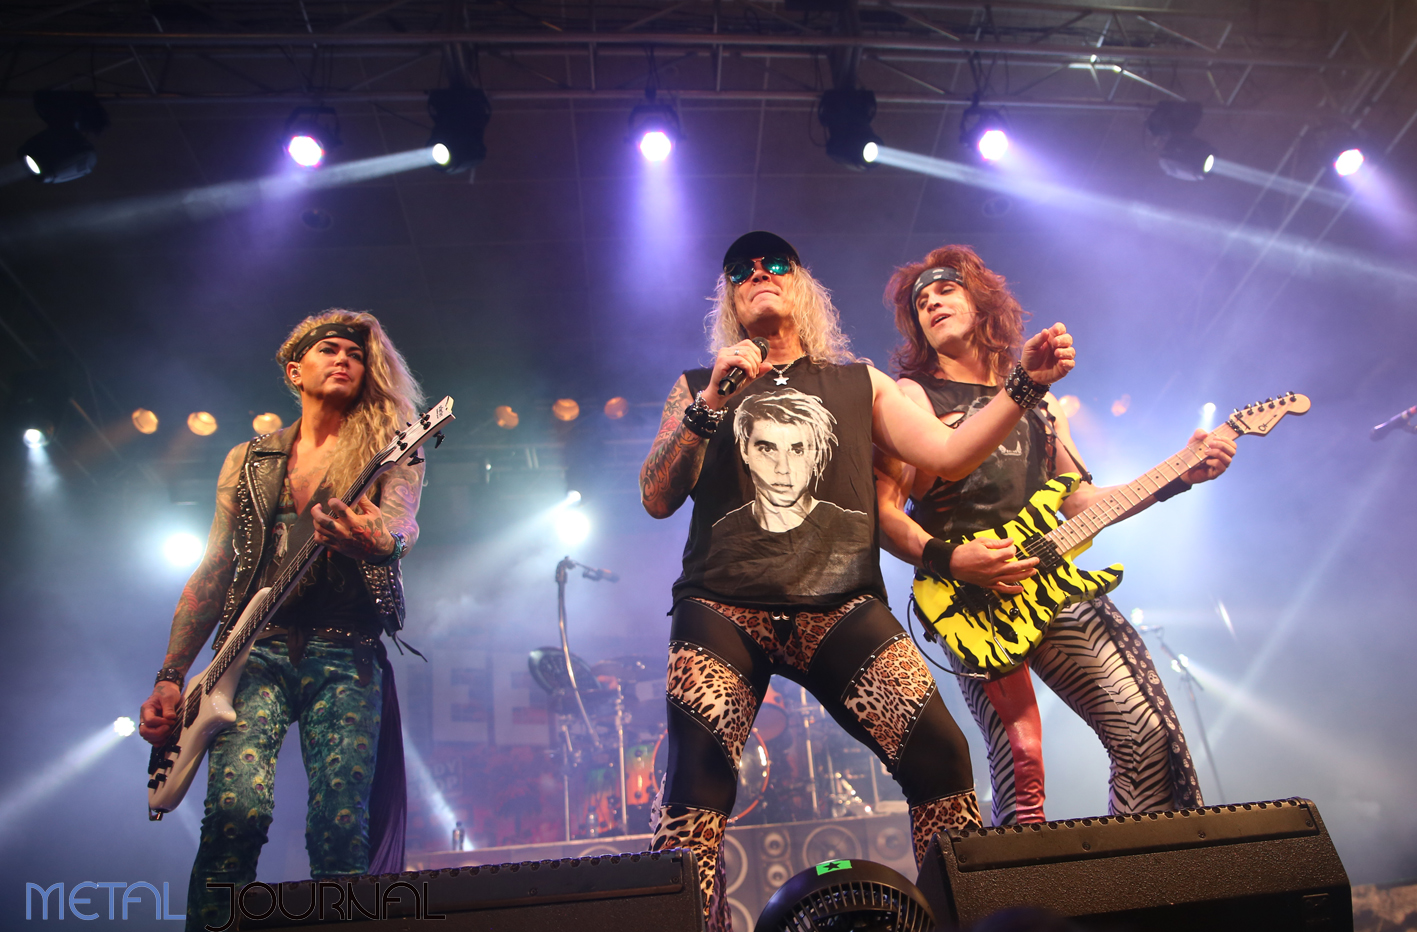 steel panther bilbao18 metal journal pic 2